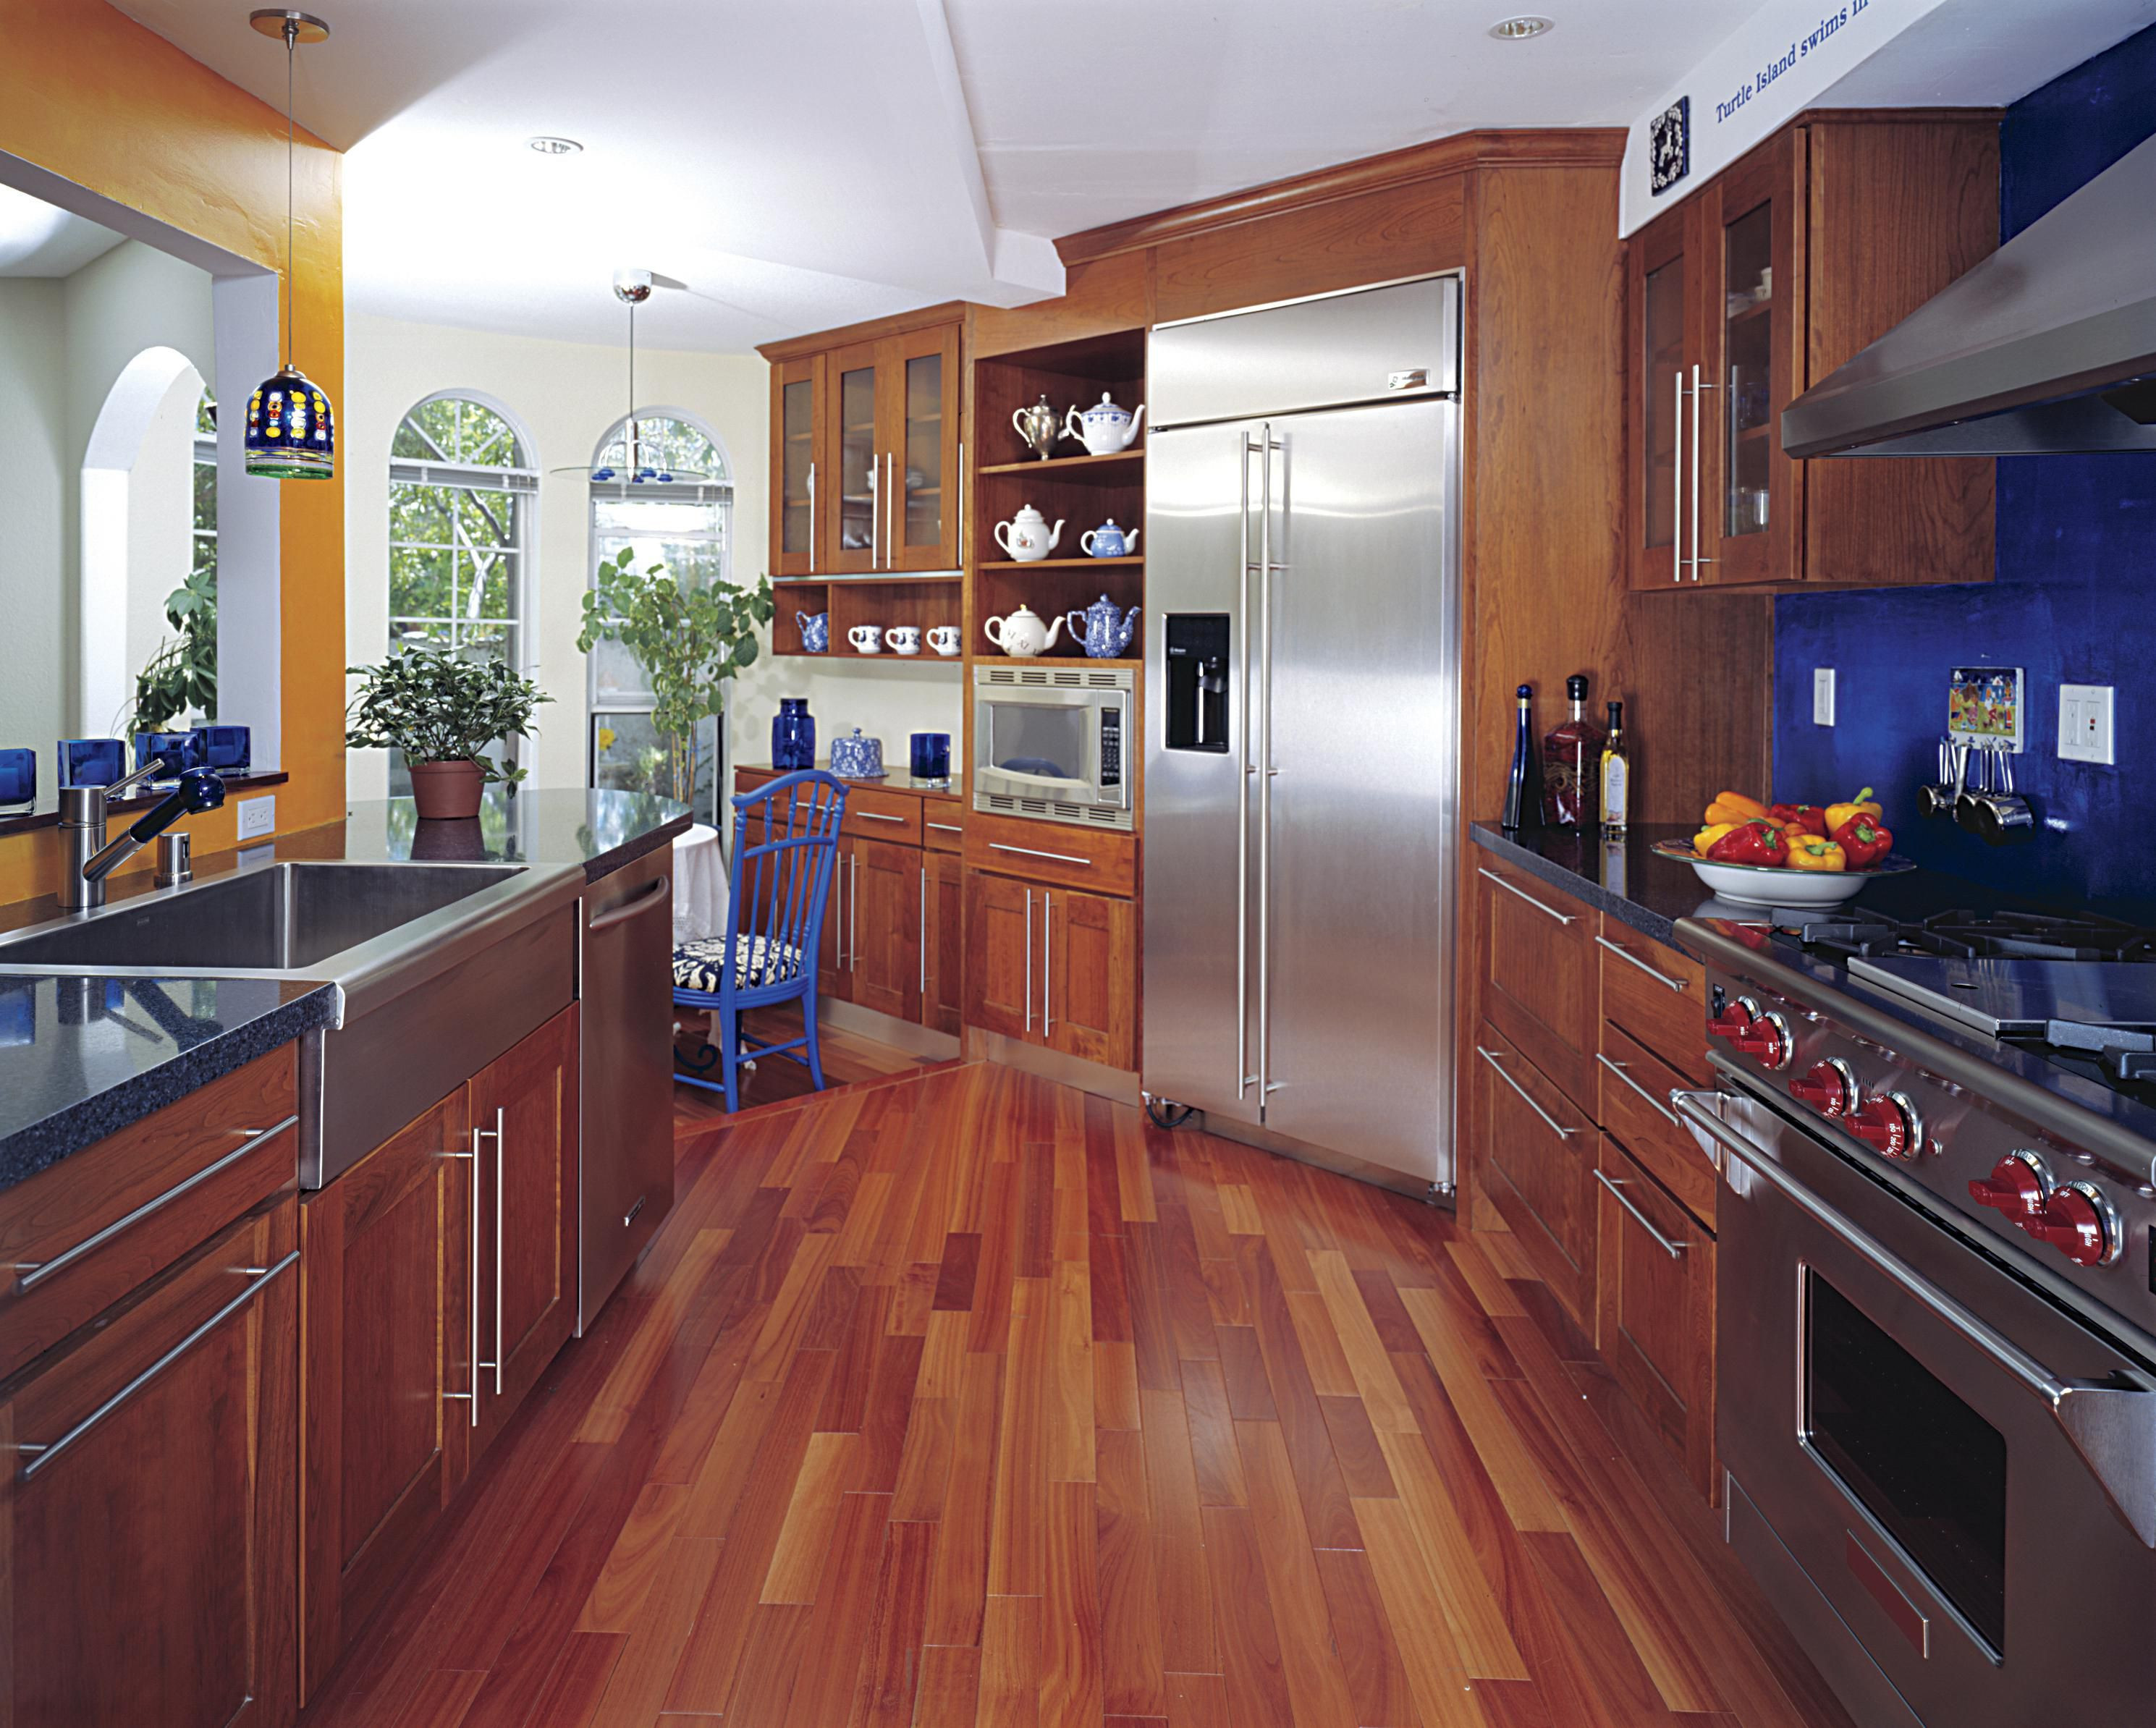 Redoing Hardwood Floors Old House Of Hardwood Floor In A Kitchen is This Allowed Intended for 186828472 56a49f3a5f9b58b7d0d7e142